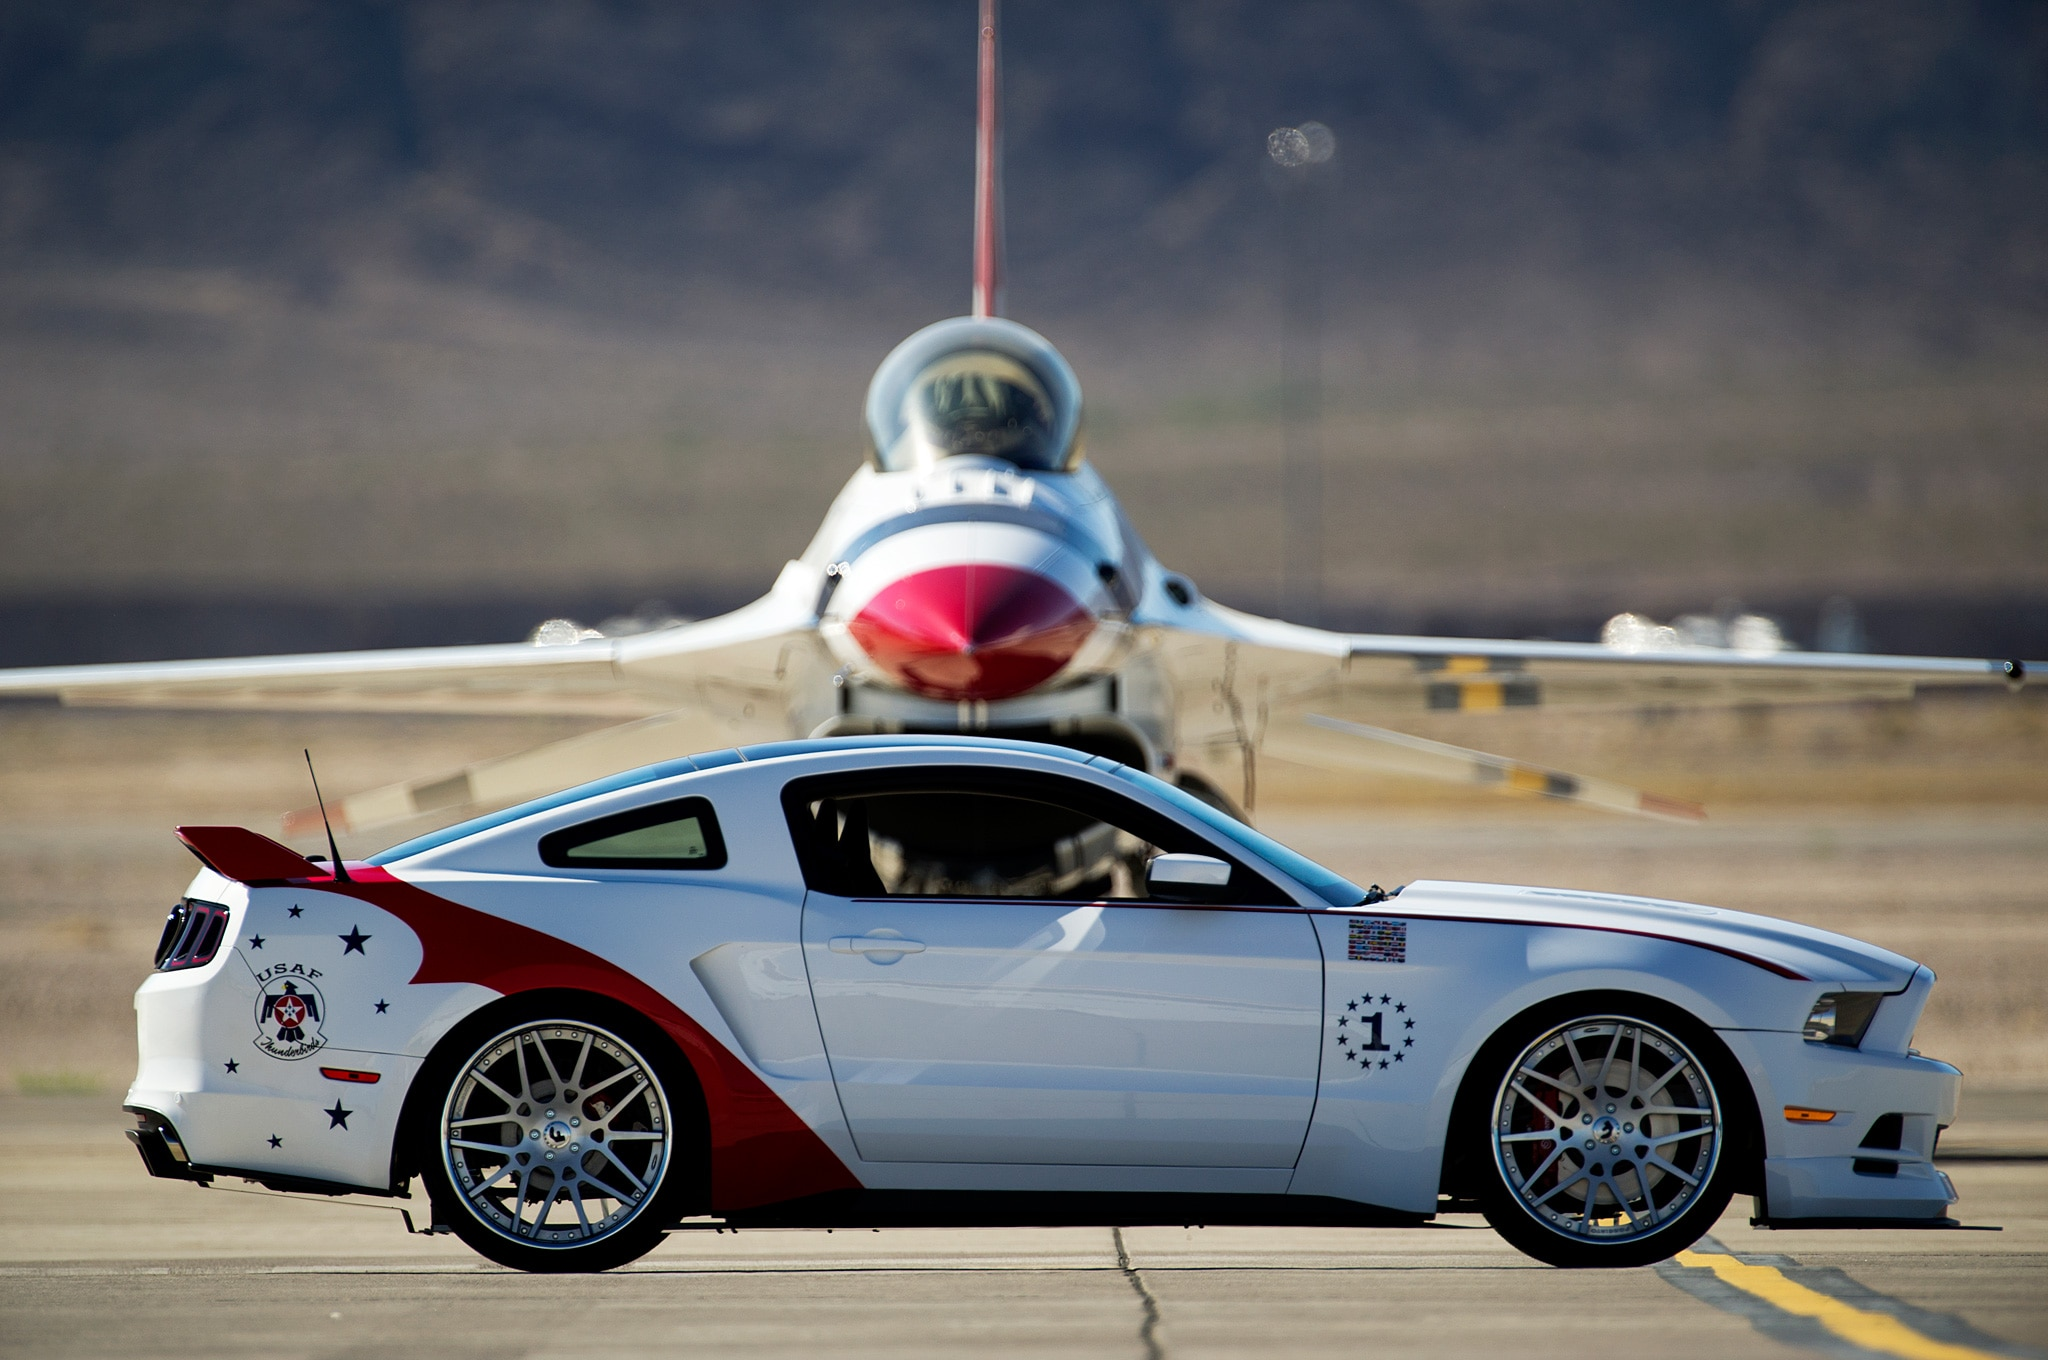 2014 Ford Mustang GT EAA Thunderbirds Edition Side View In Front Of Plane1